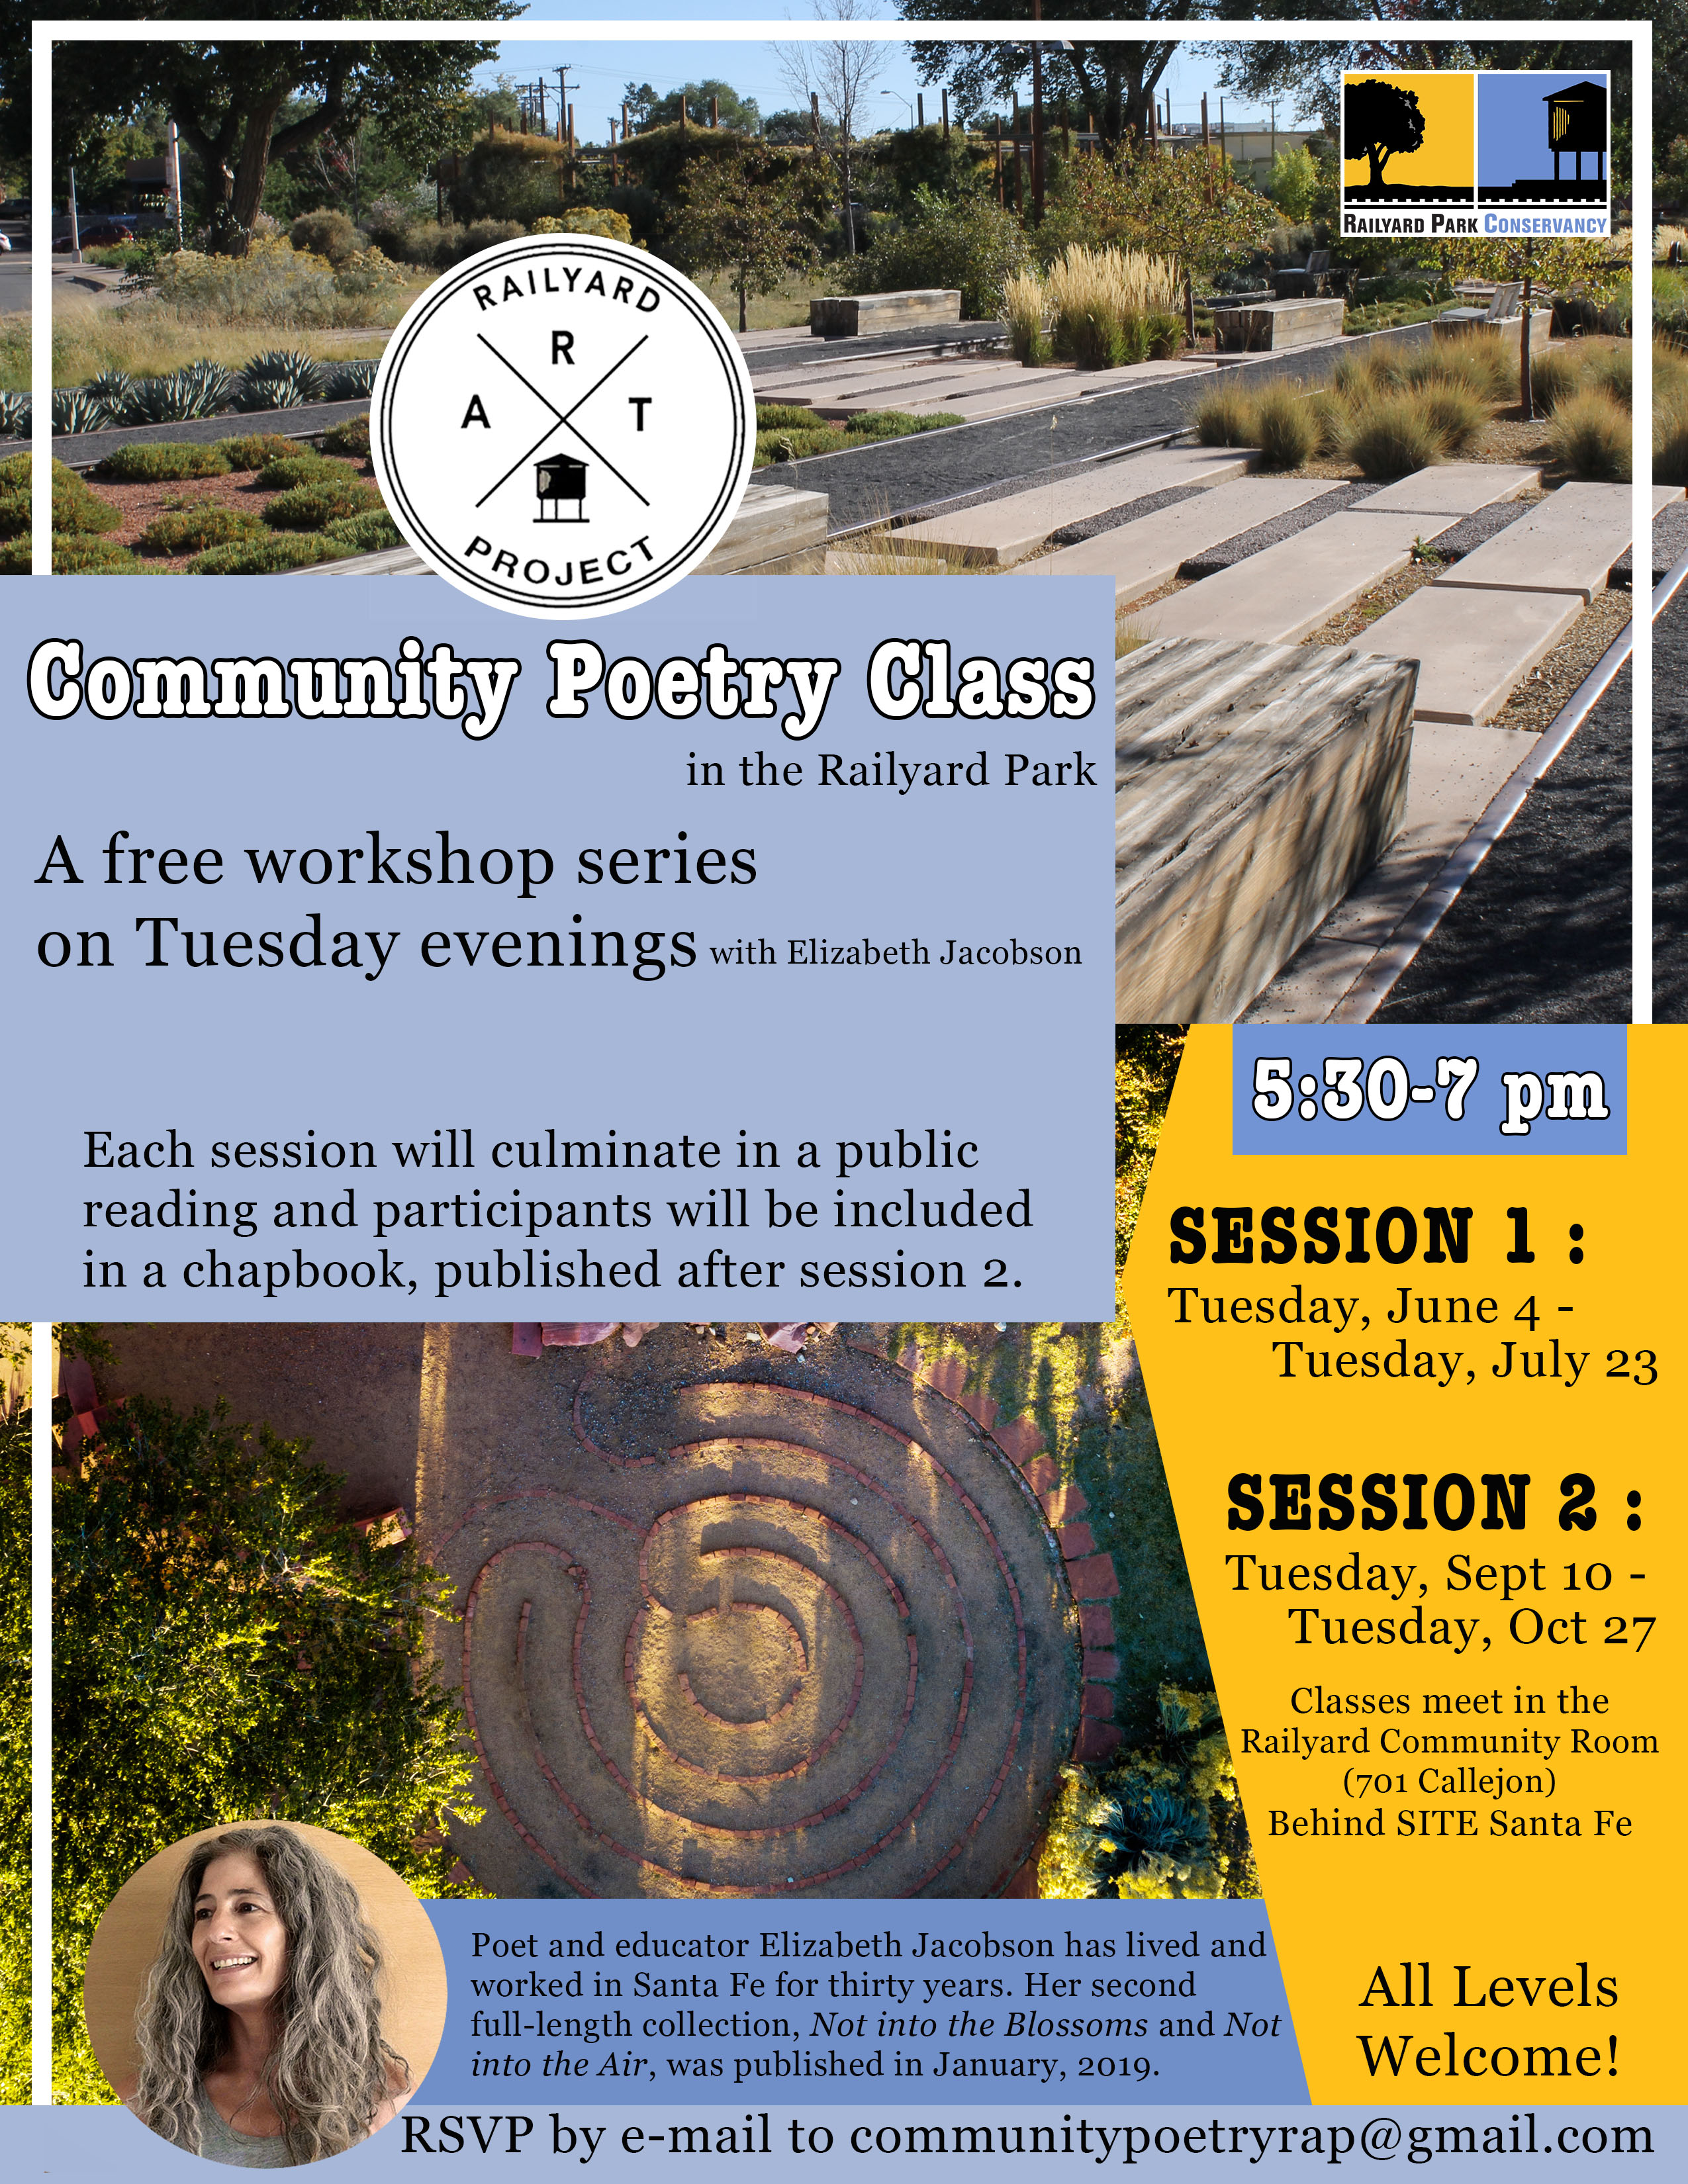 COMMUNITY POETRY CLASS @ Railyard Park Community Room | Santa Fe | New Mexico | United States